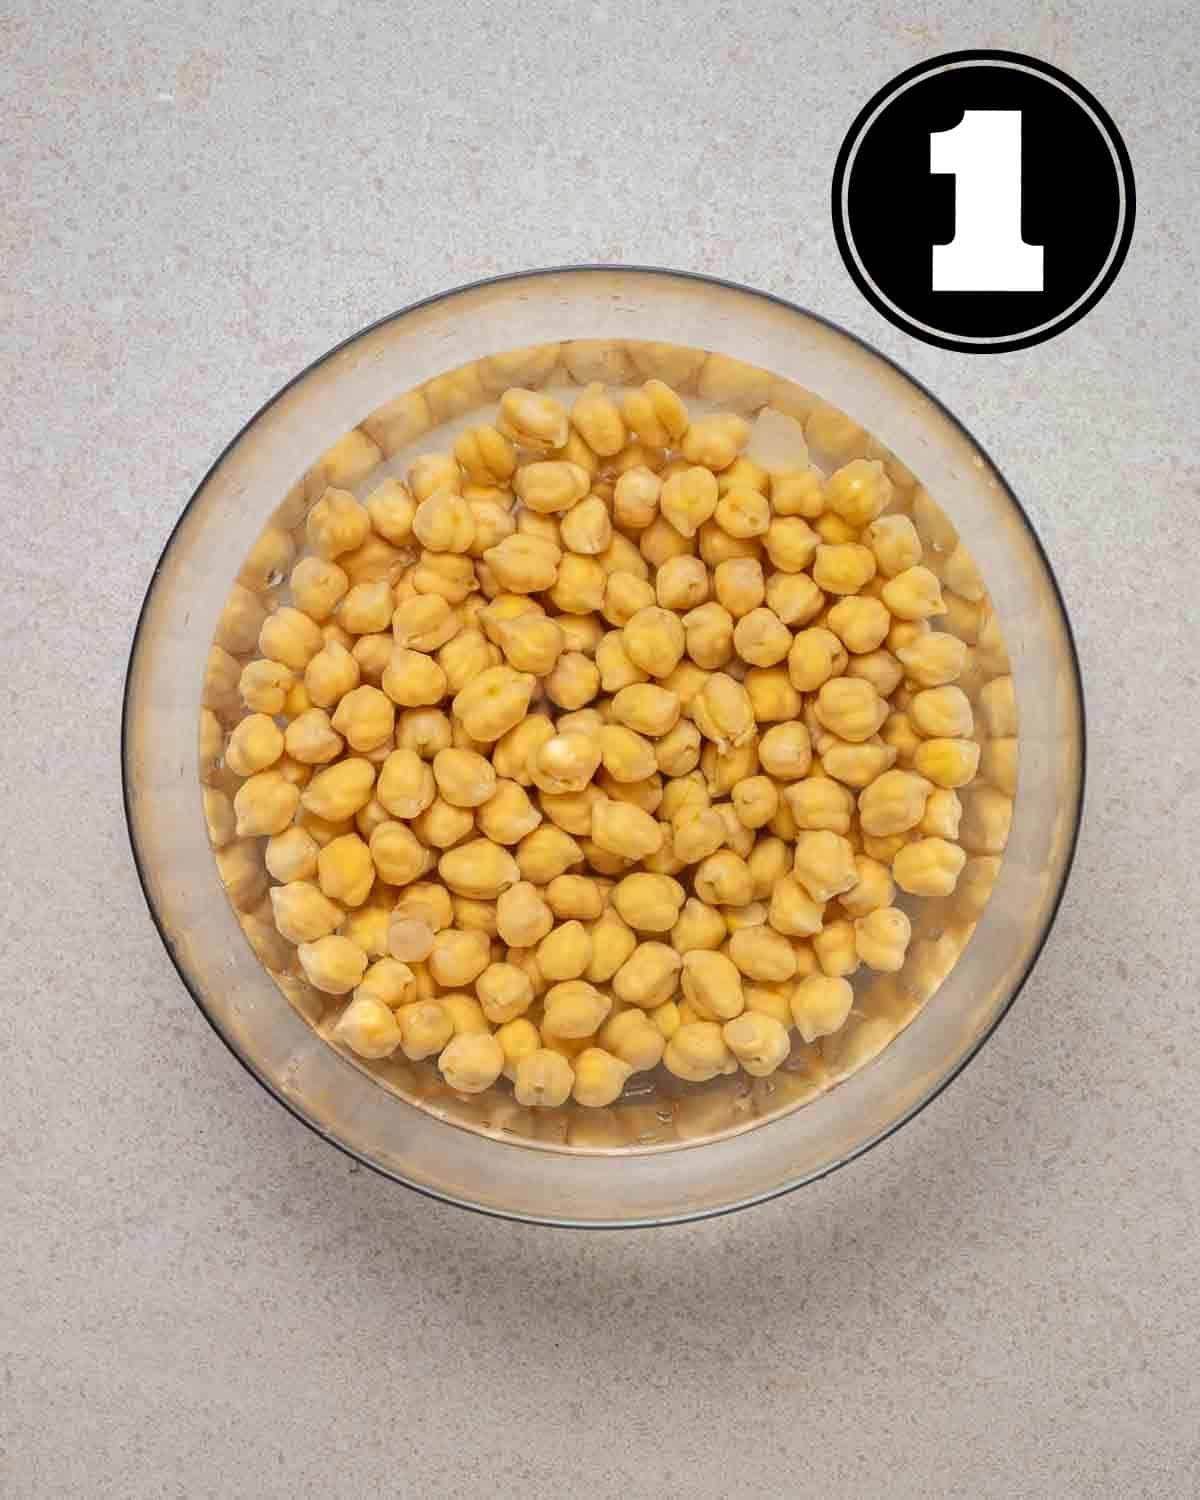 Soaking chickpeas in water in a glass bowl.